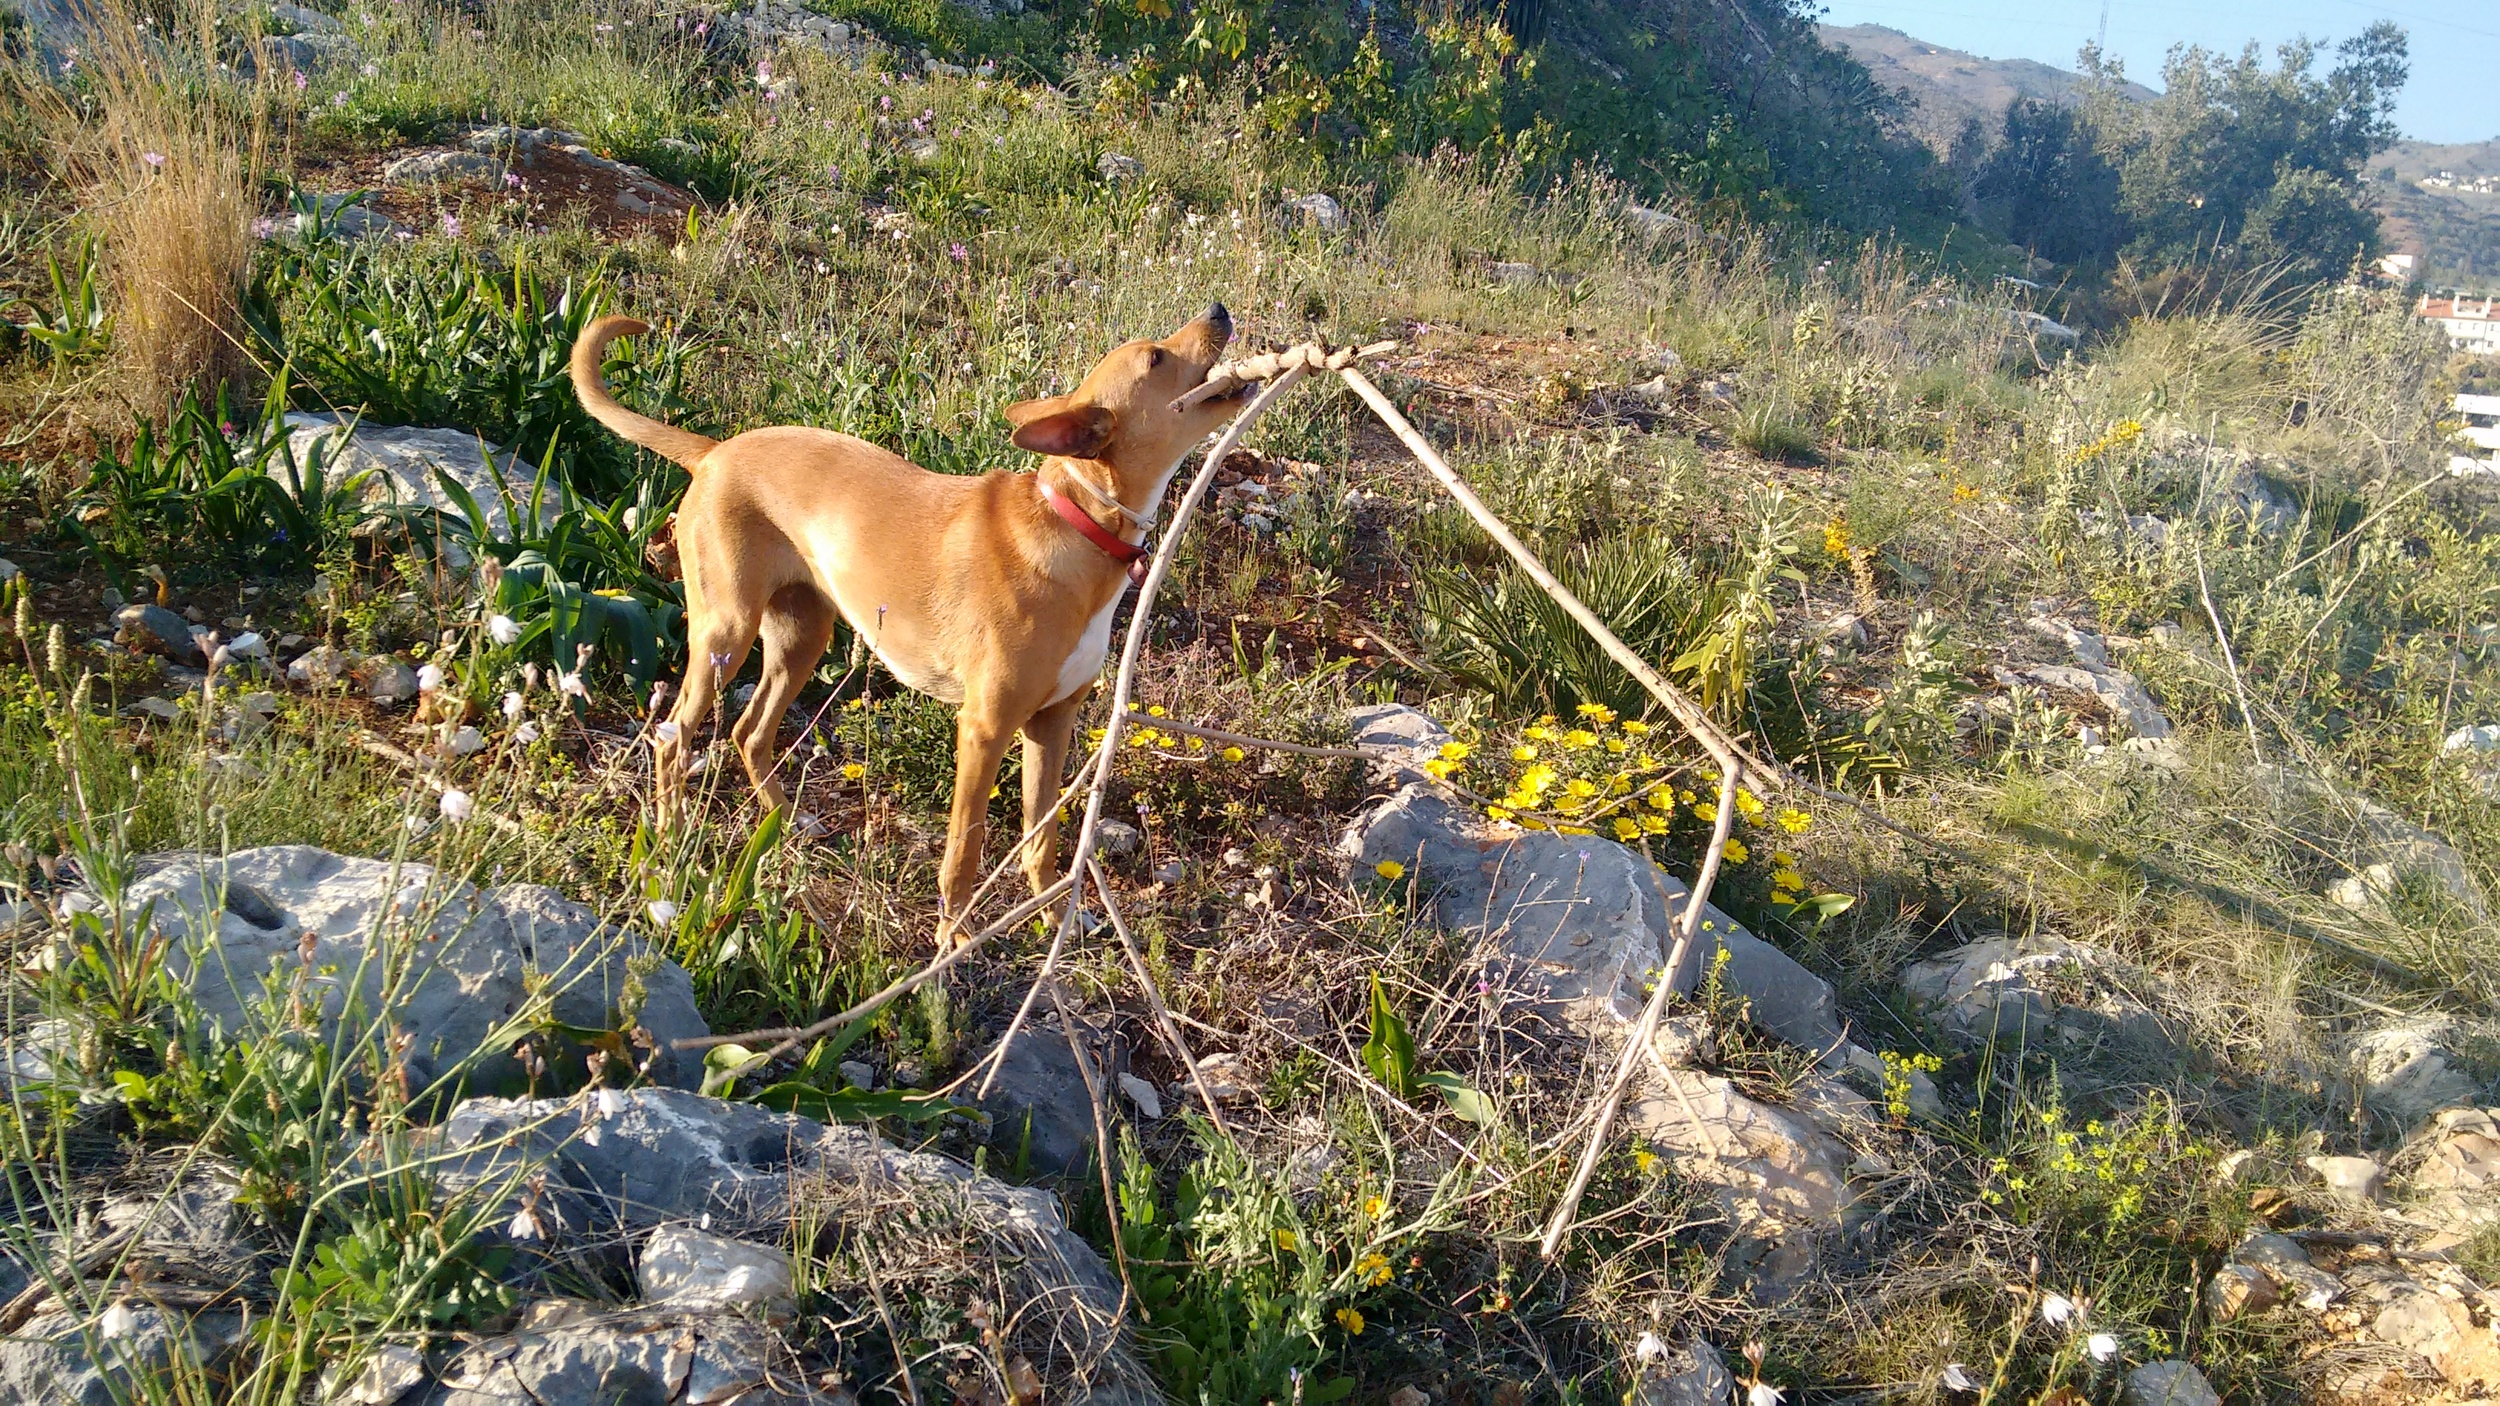 Walks with Haya are all about sticks (and wild flowers). /  Siempre hay palos de por medio (además de flores silvestres) en los paseos con Haya.